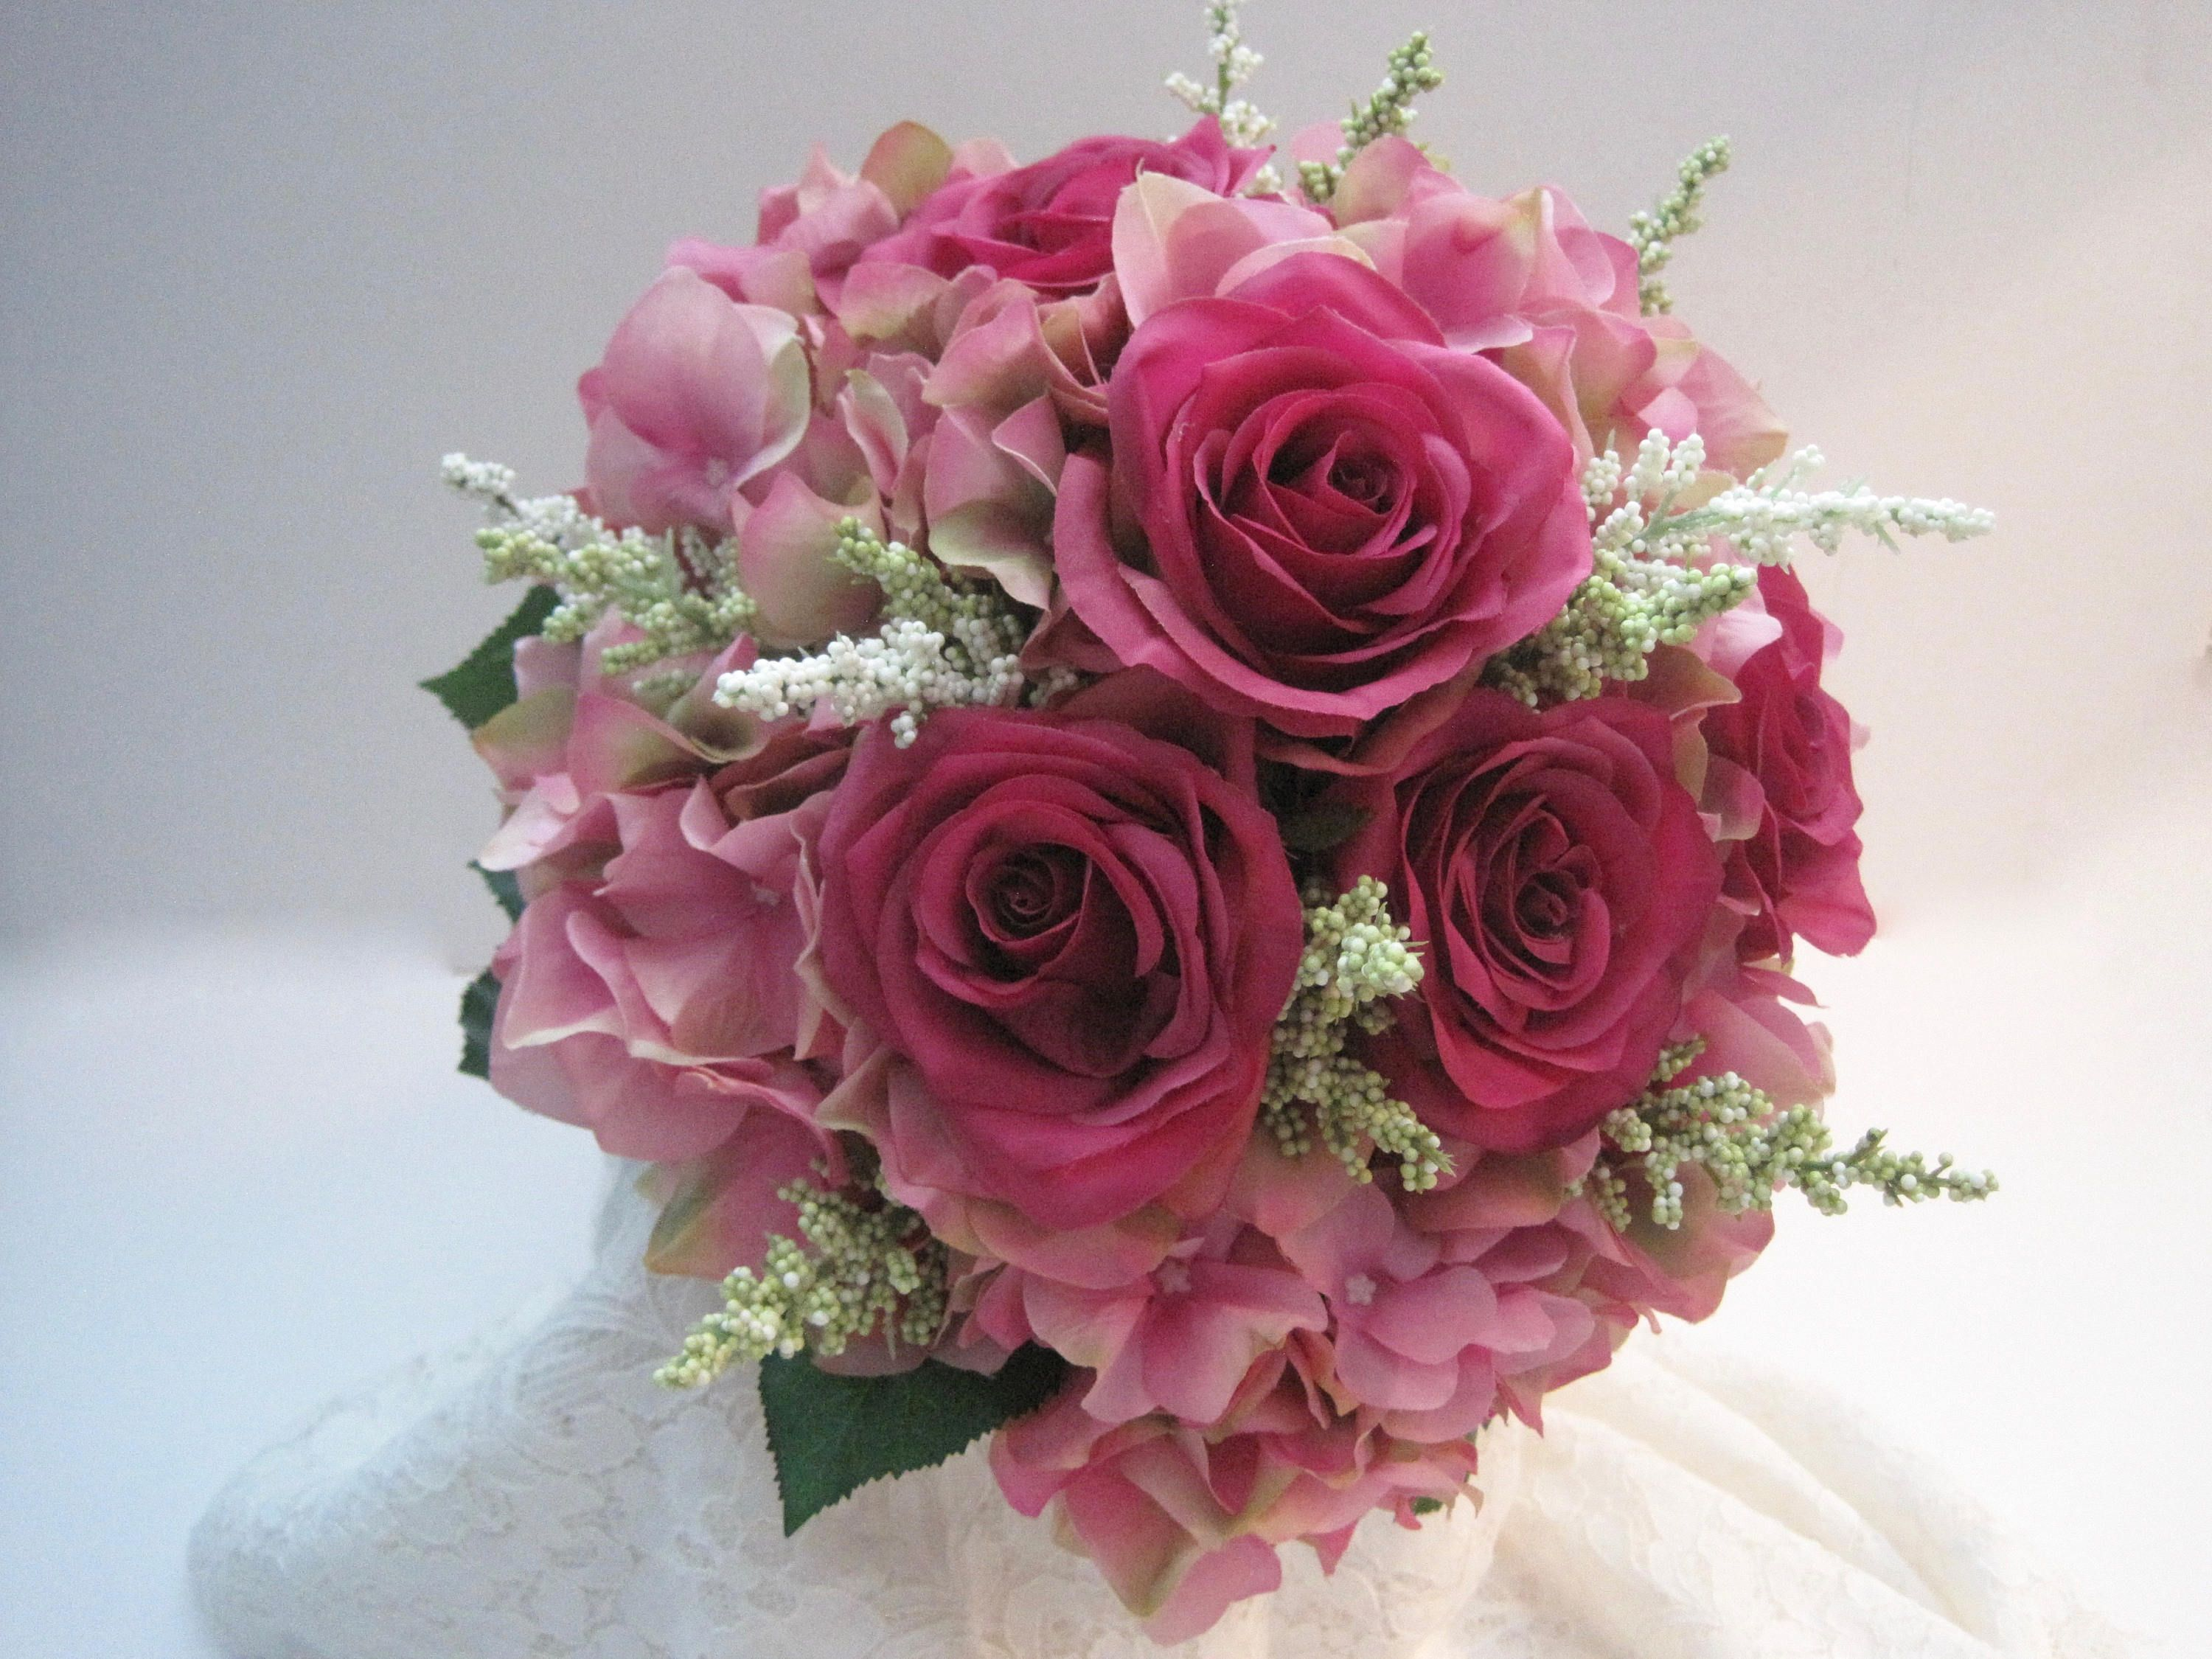 Stunning pink bridal bouquet with pink hydrangea and dark pink roses stunning pink bridal bouquet with pink hydrangea and dark pink roses french knotted with pearl and rhinestone accent handle mightylinksfo